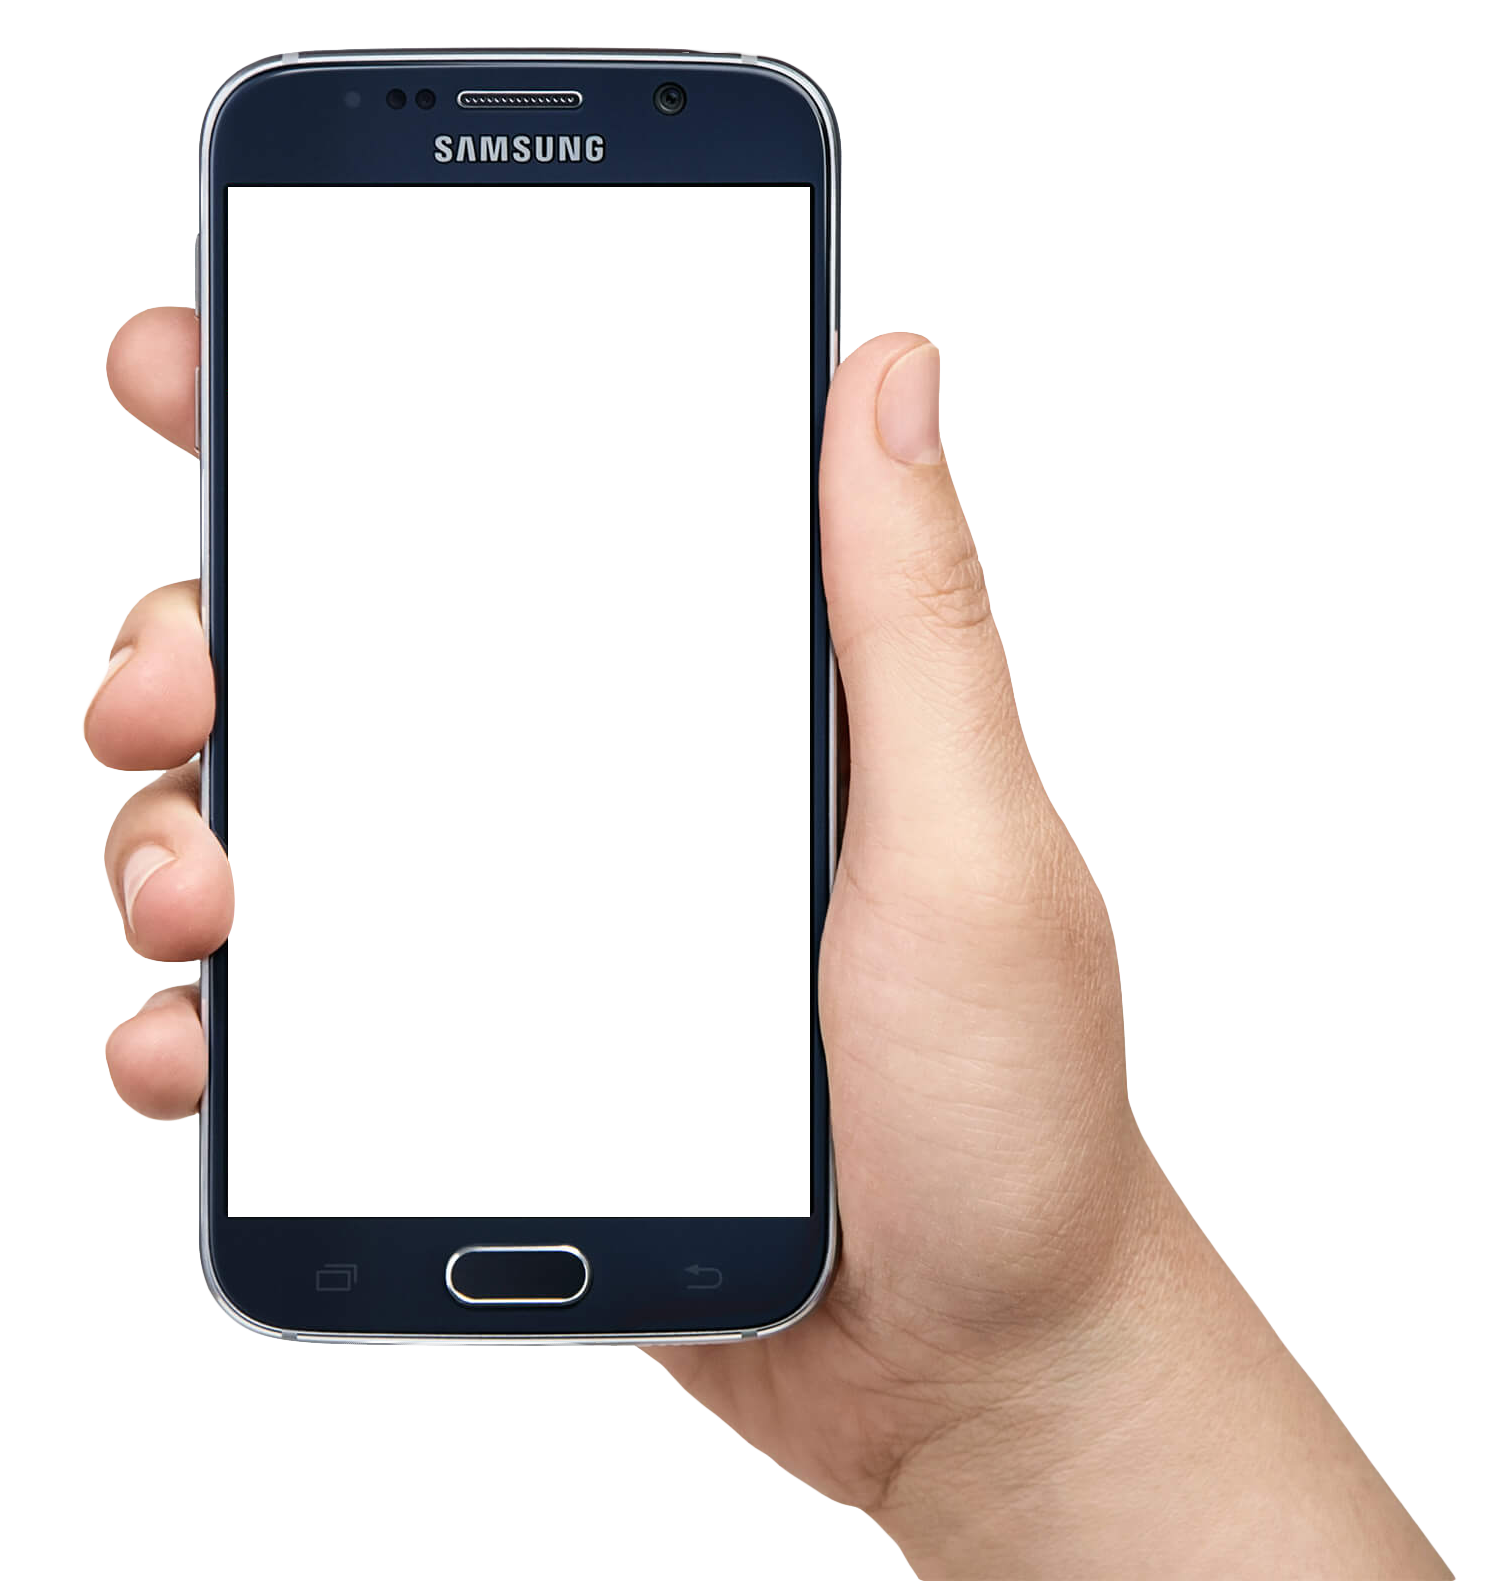 Phone png. In hand images free